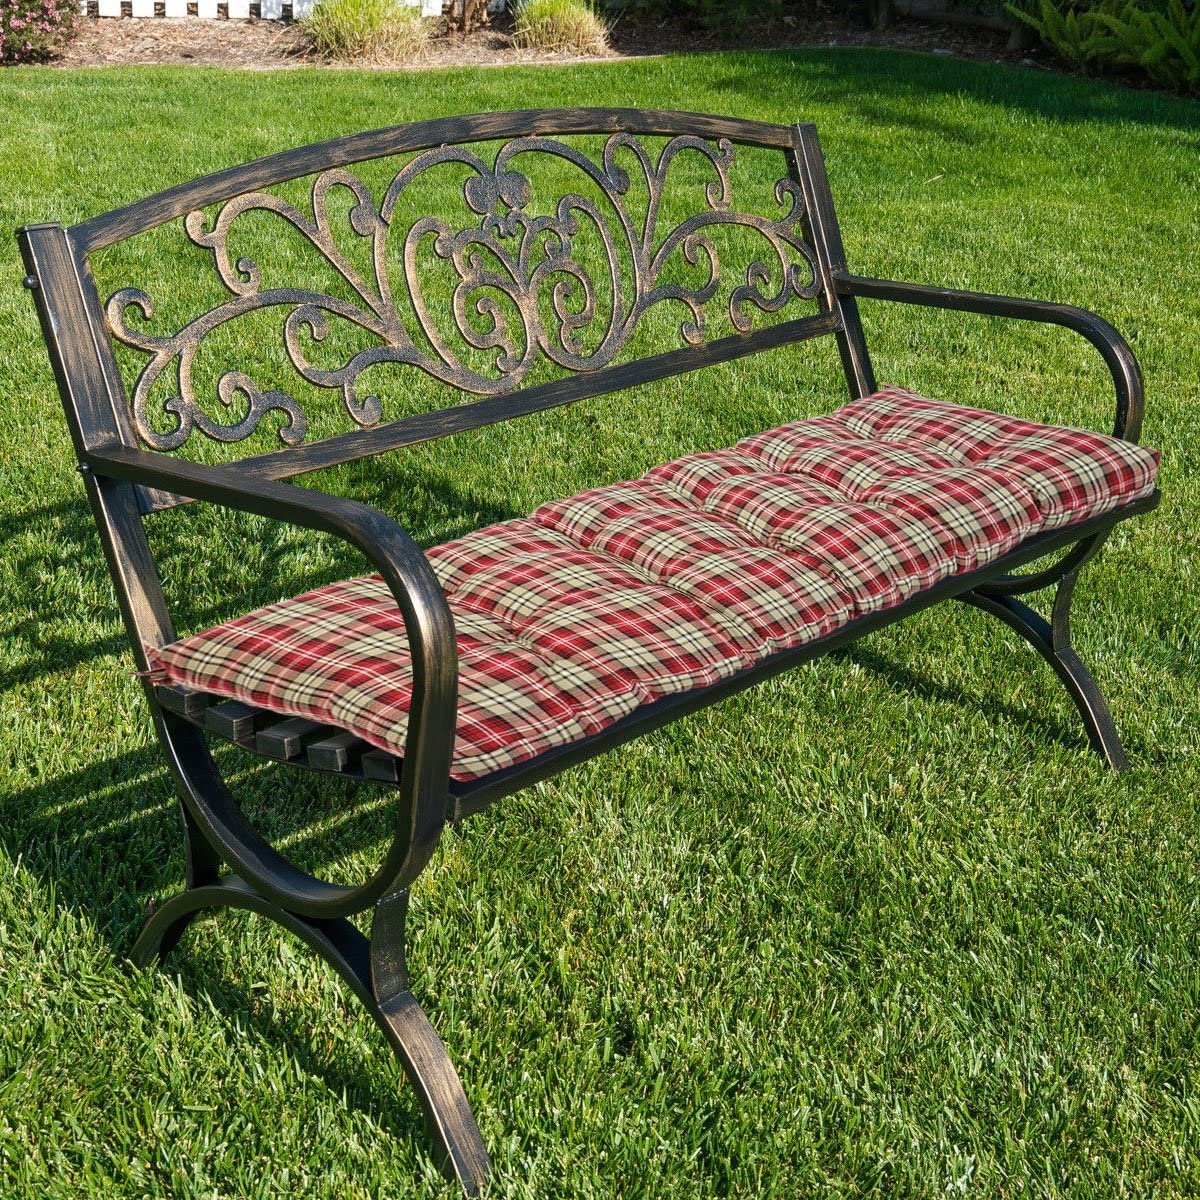 Floral Magshion Indoor//Outdoor Wicker Bench Chair Cushion Made in USA